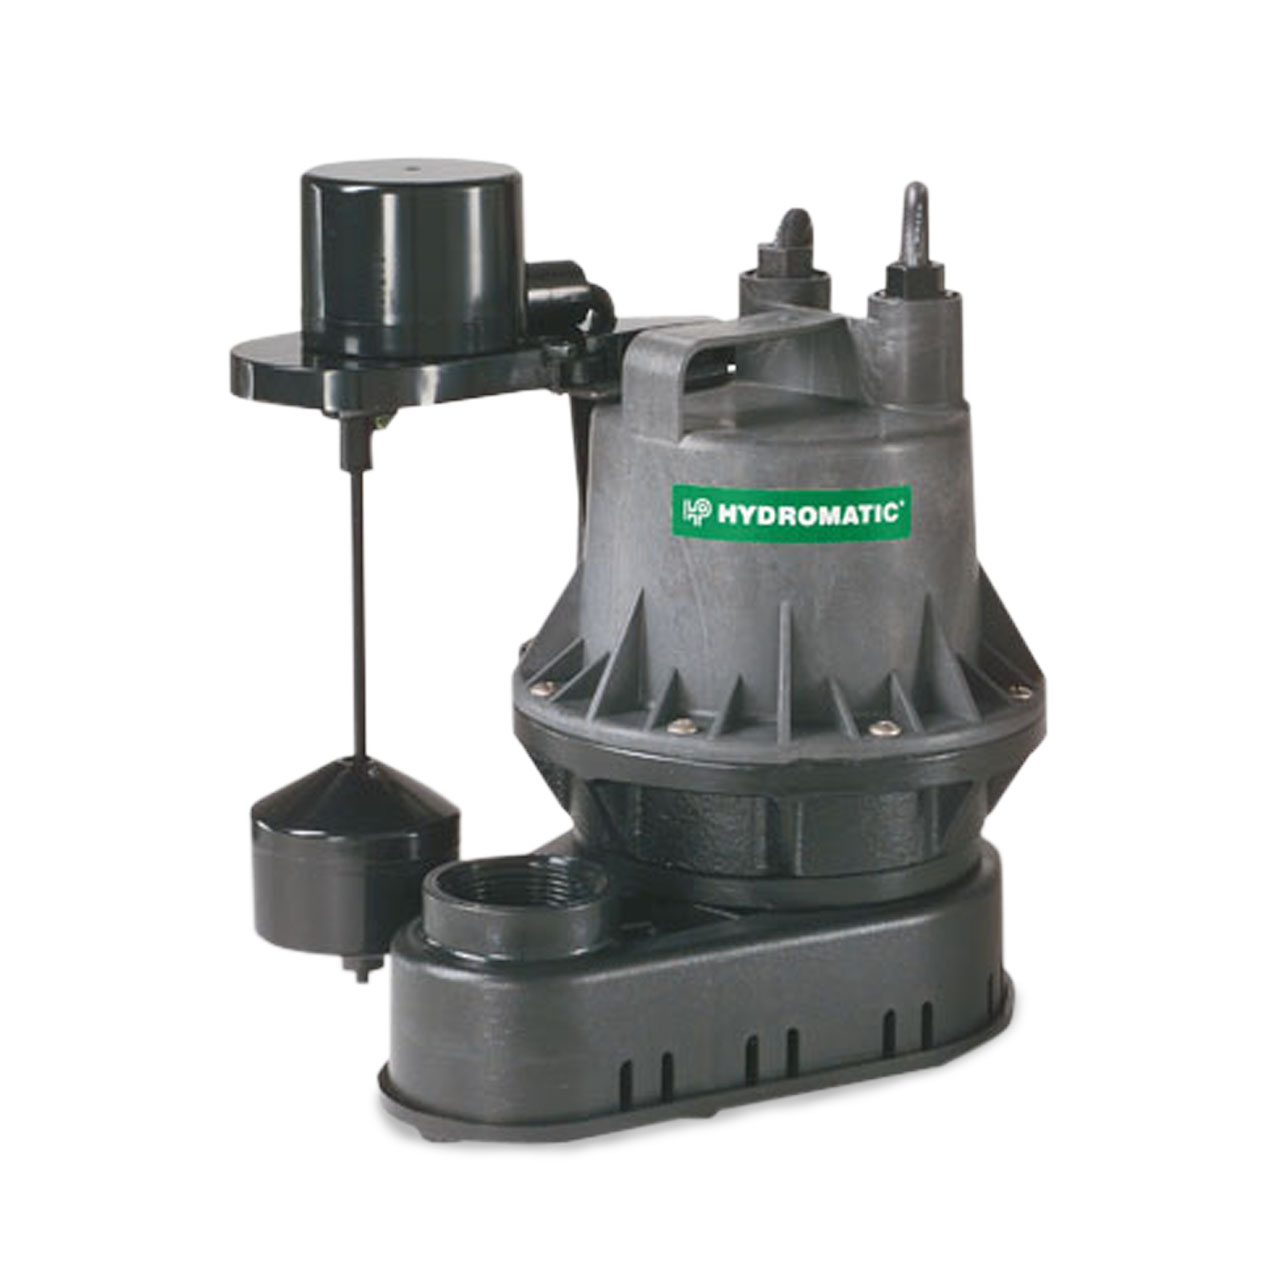 Hydromatic Pump Hydromatic Bv A1 Submersible Sump Pump 1